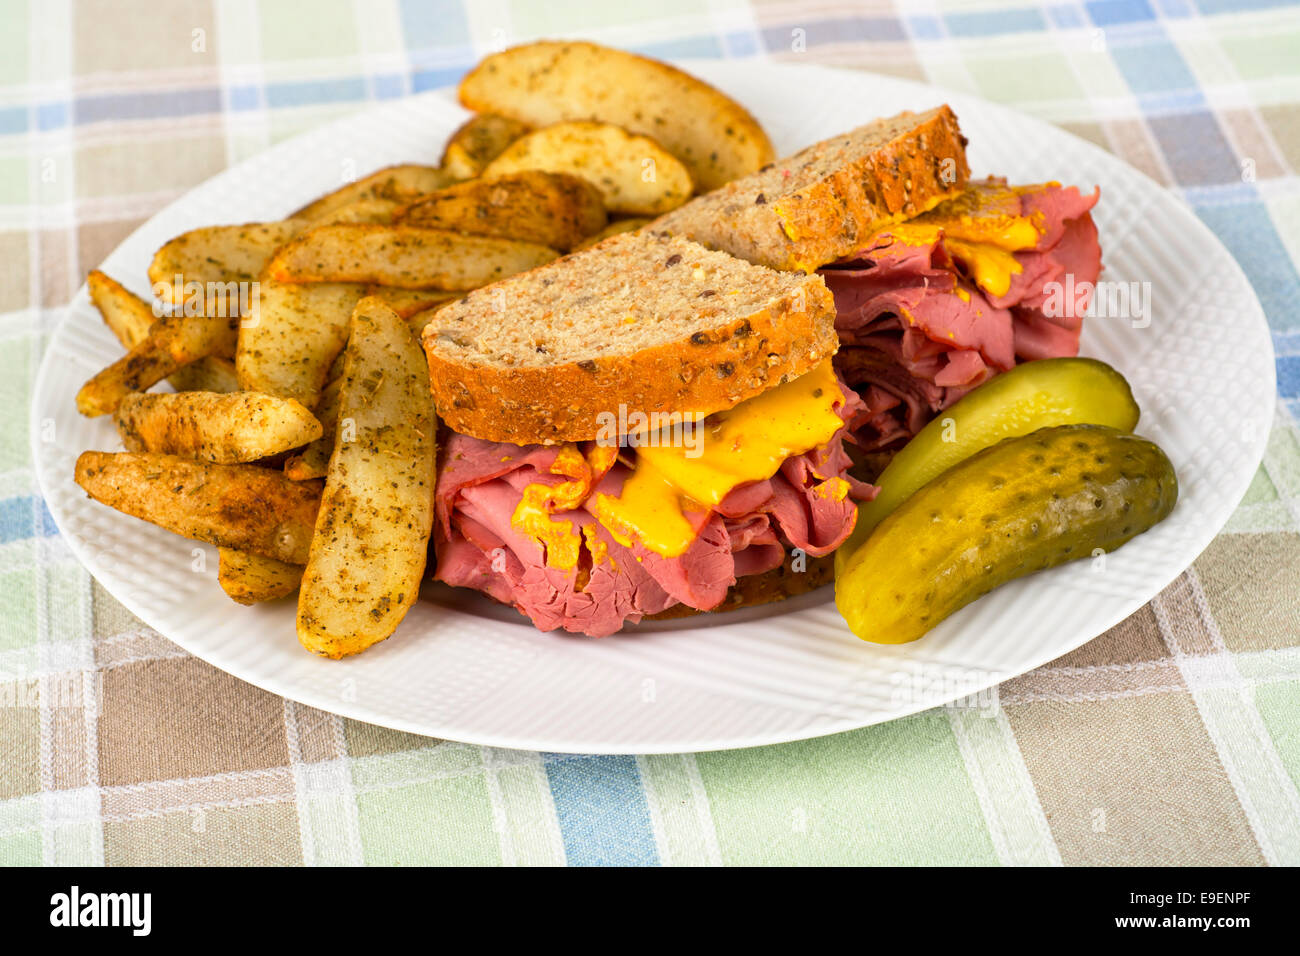 Corned Beef Sandwich Mustard Roasted Potatoes and Pickle on Plate - Stock Image